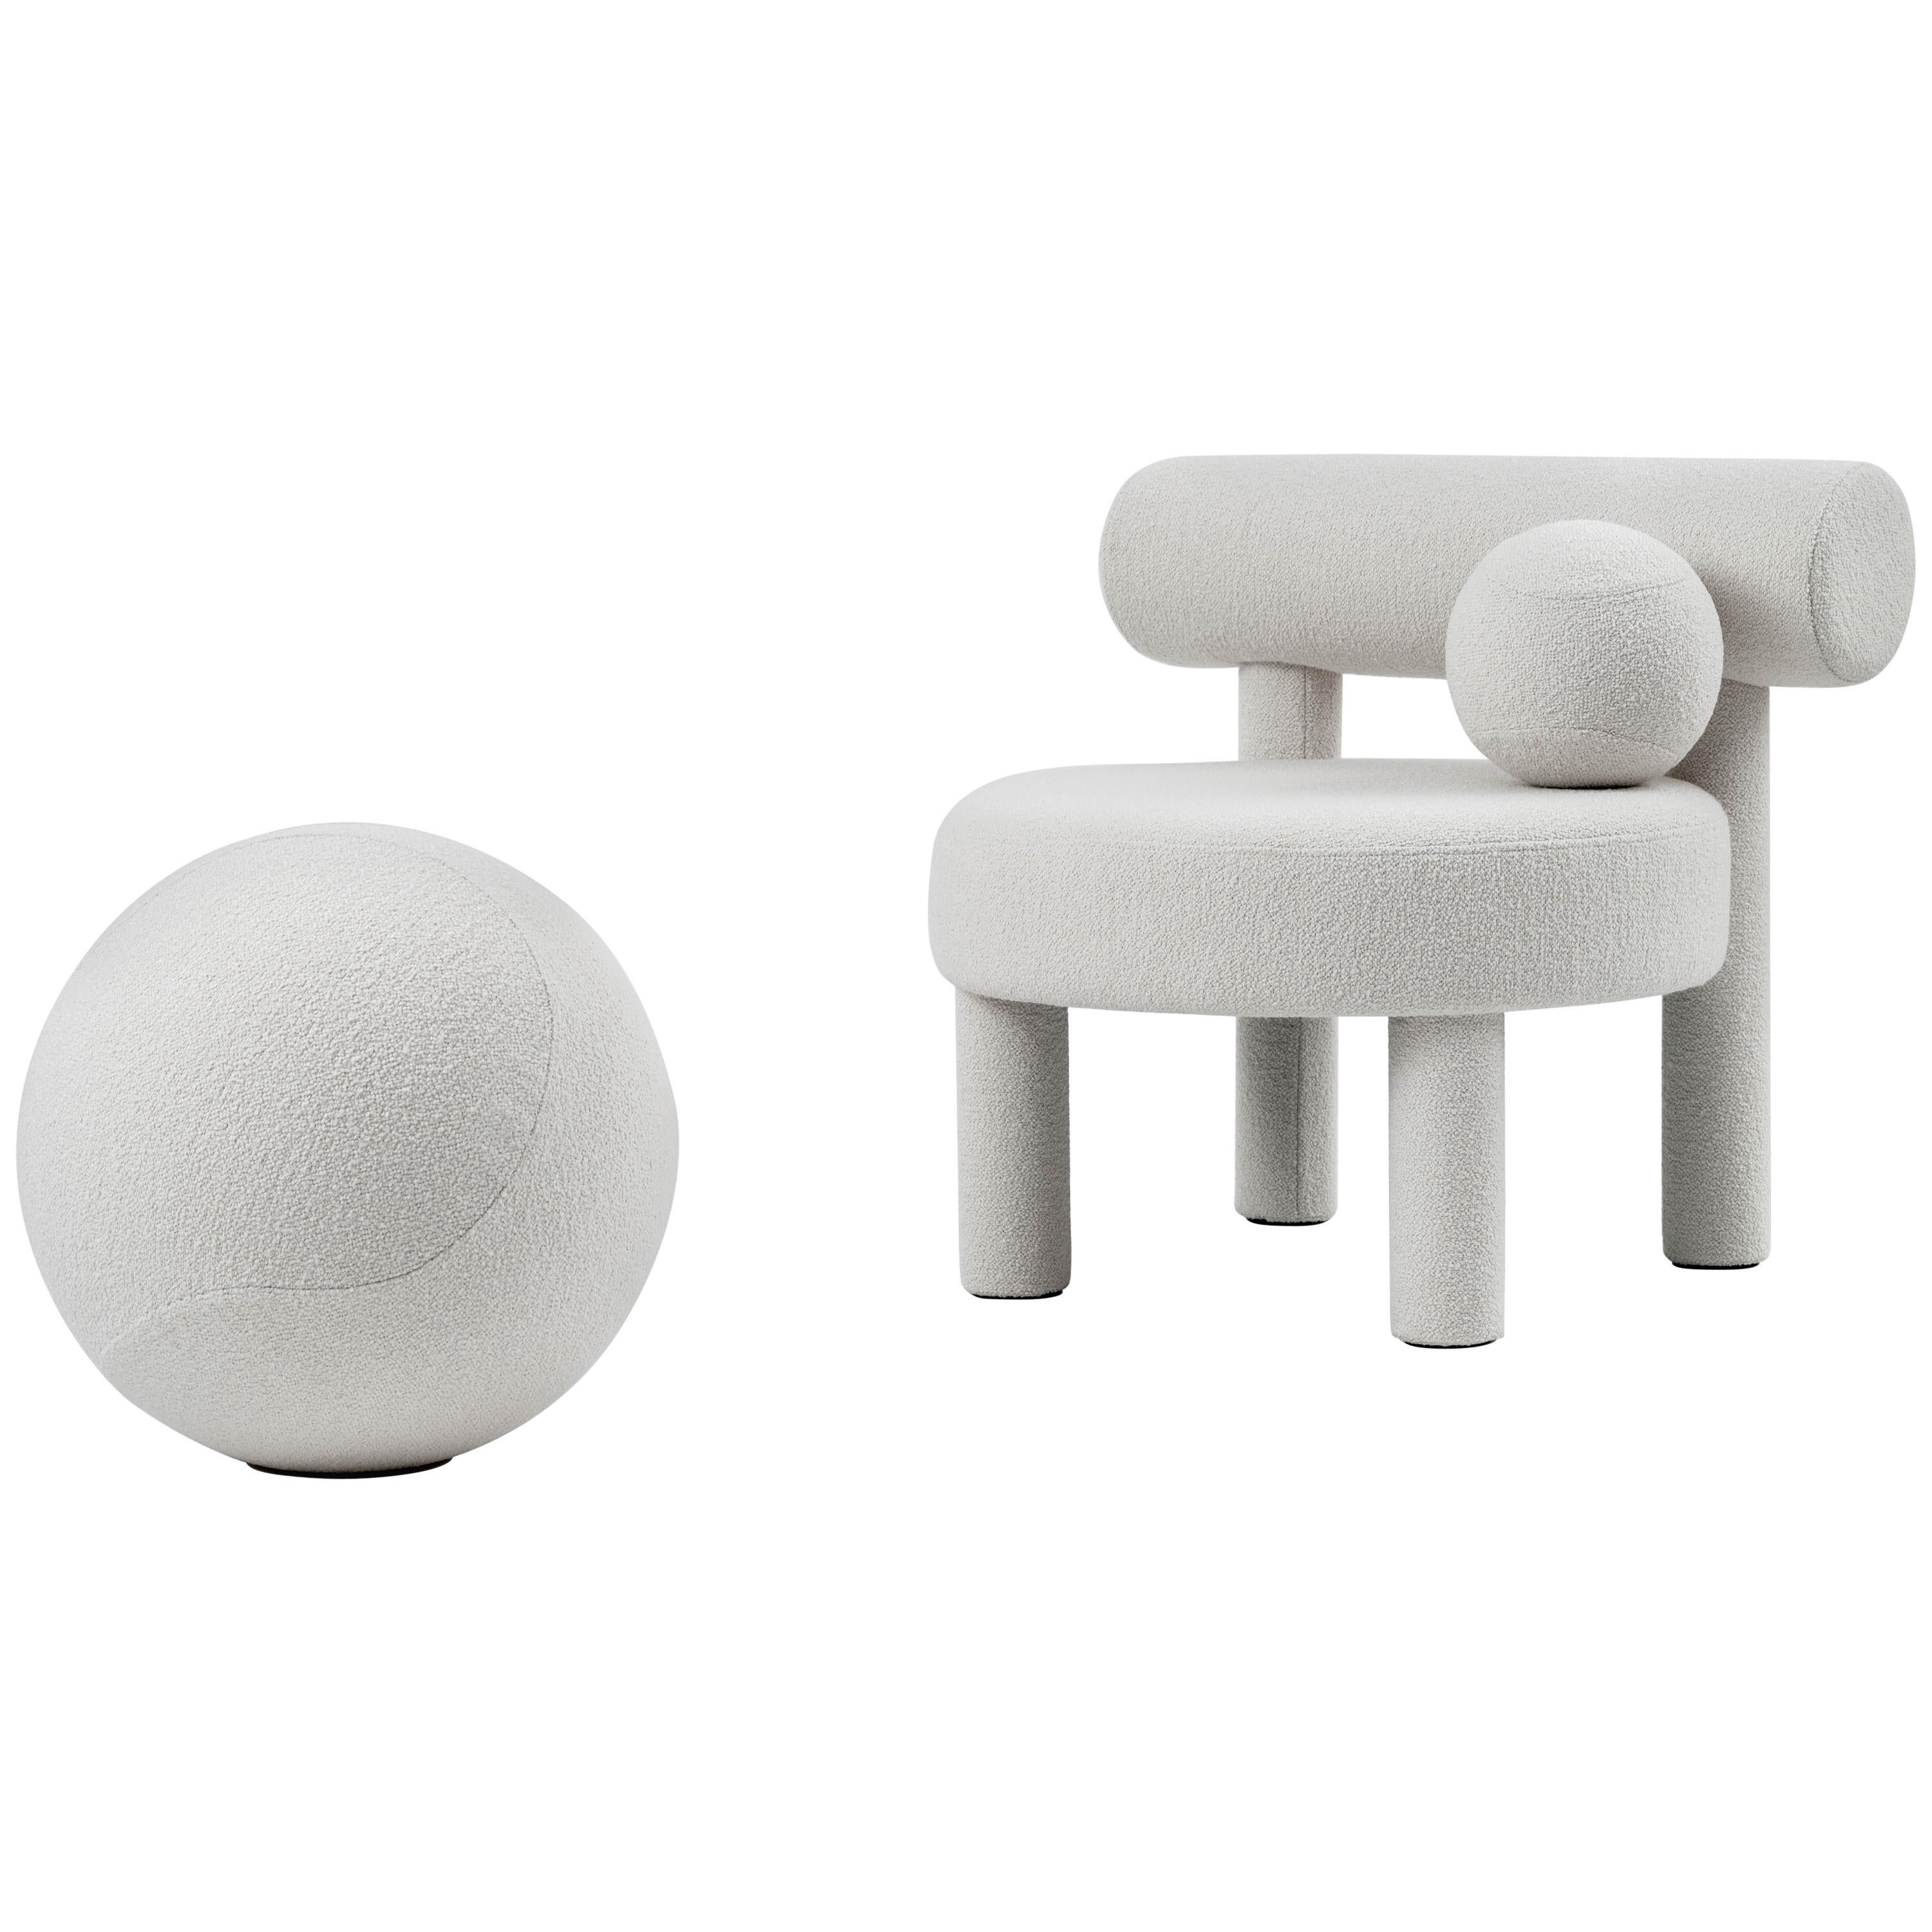 Velvet Low Chair and Spheric Stool Set by NOOM